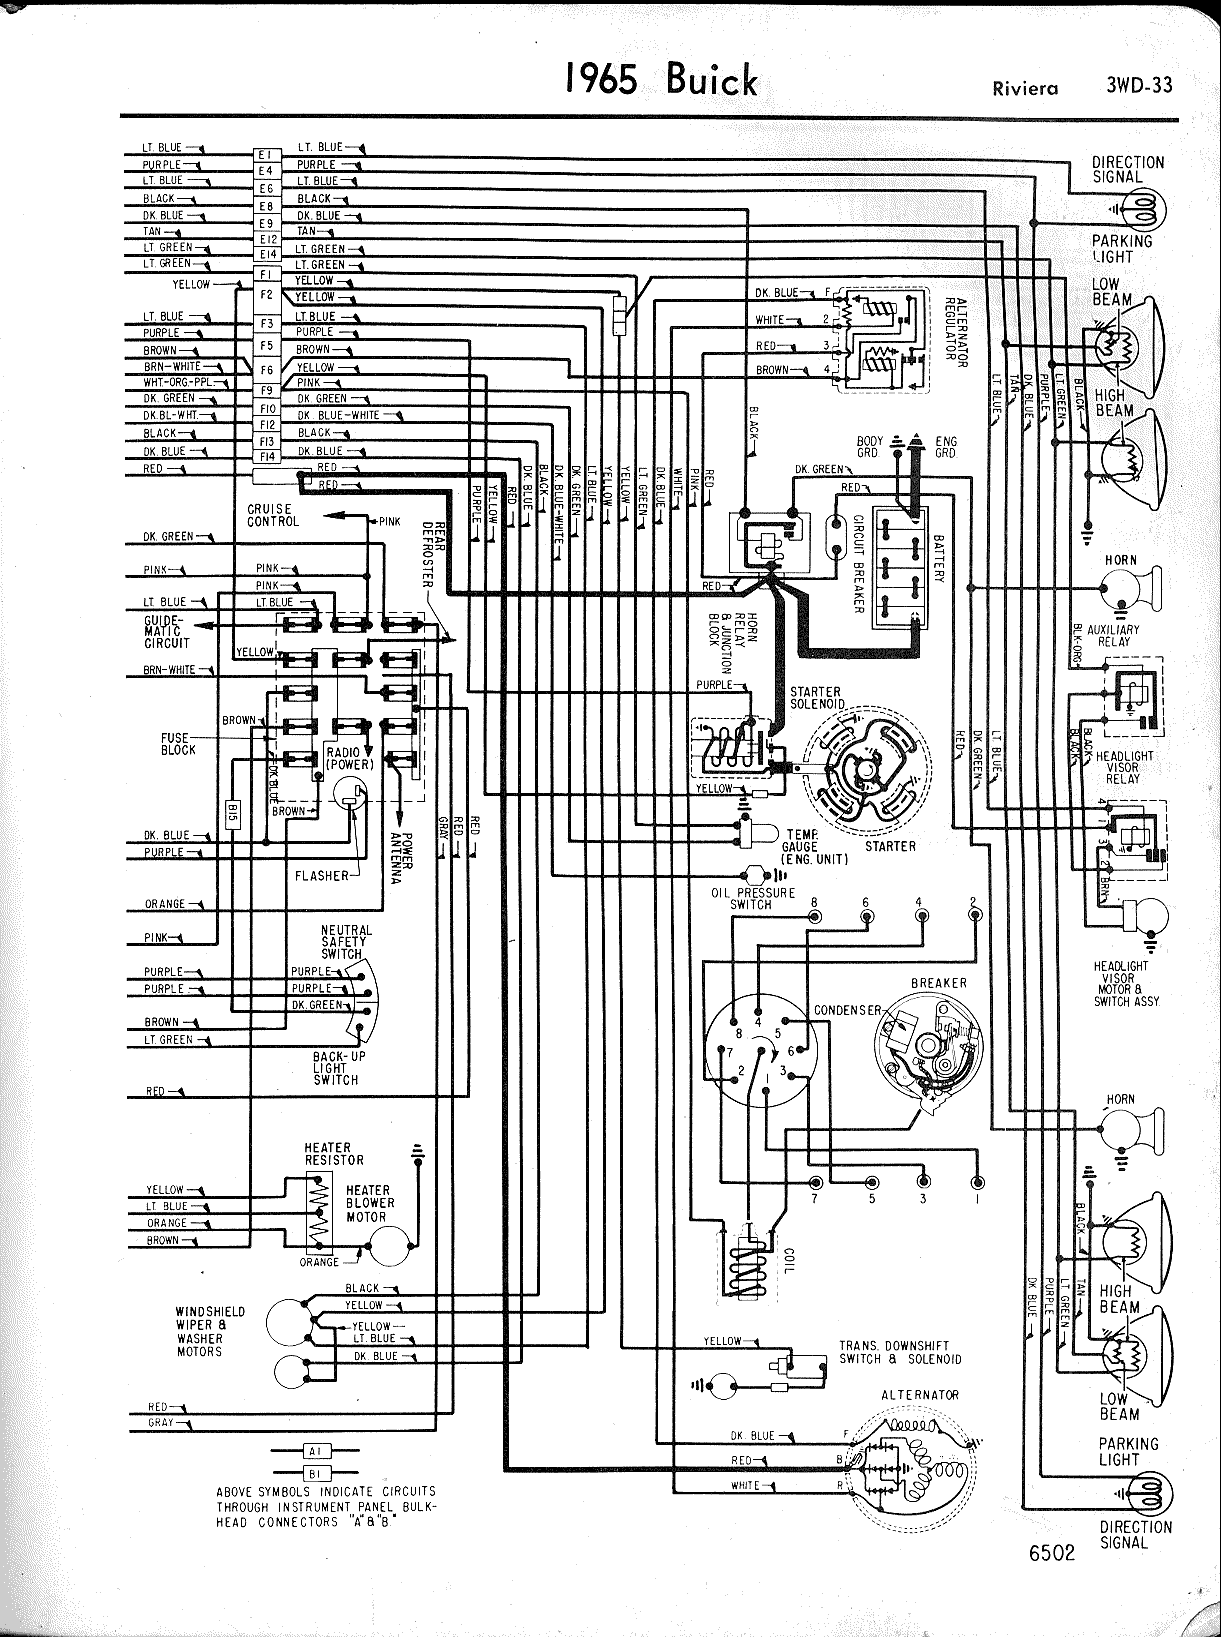 65 riviera wiring diagram free picture schematic buick wiring diagrams: 1957-1965 #3